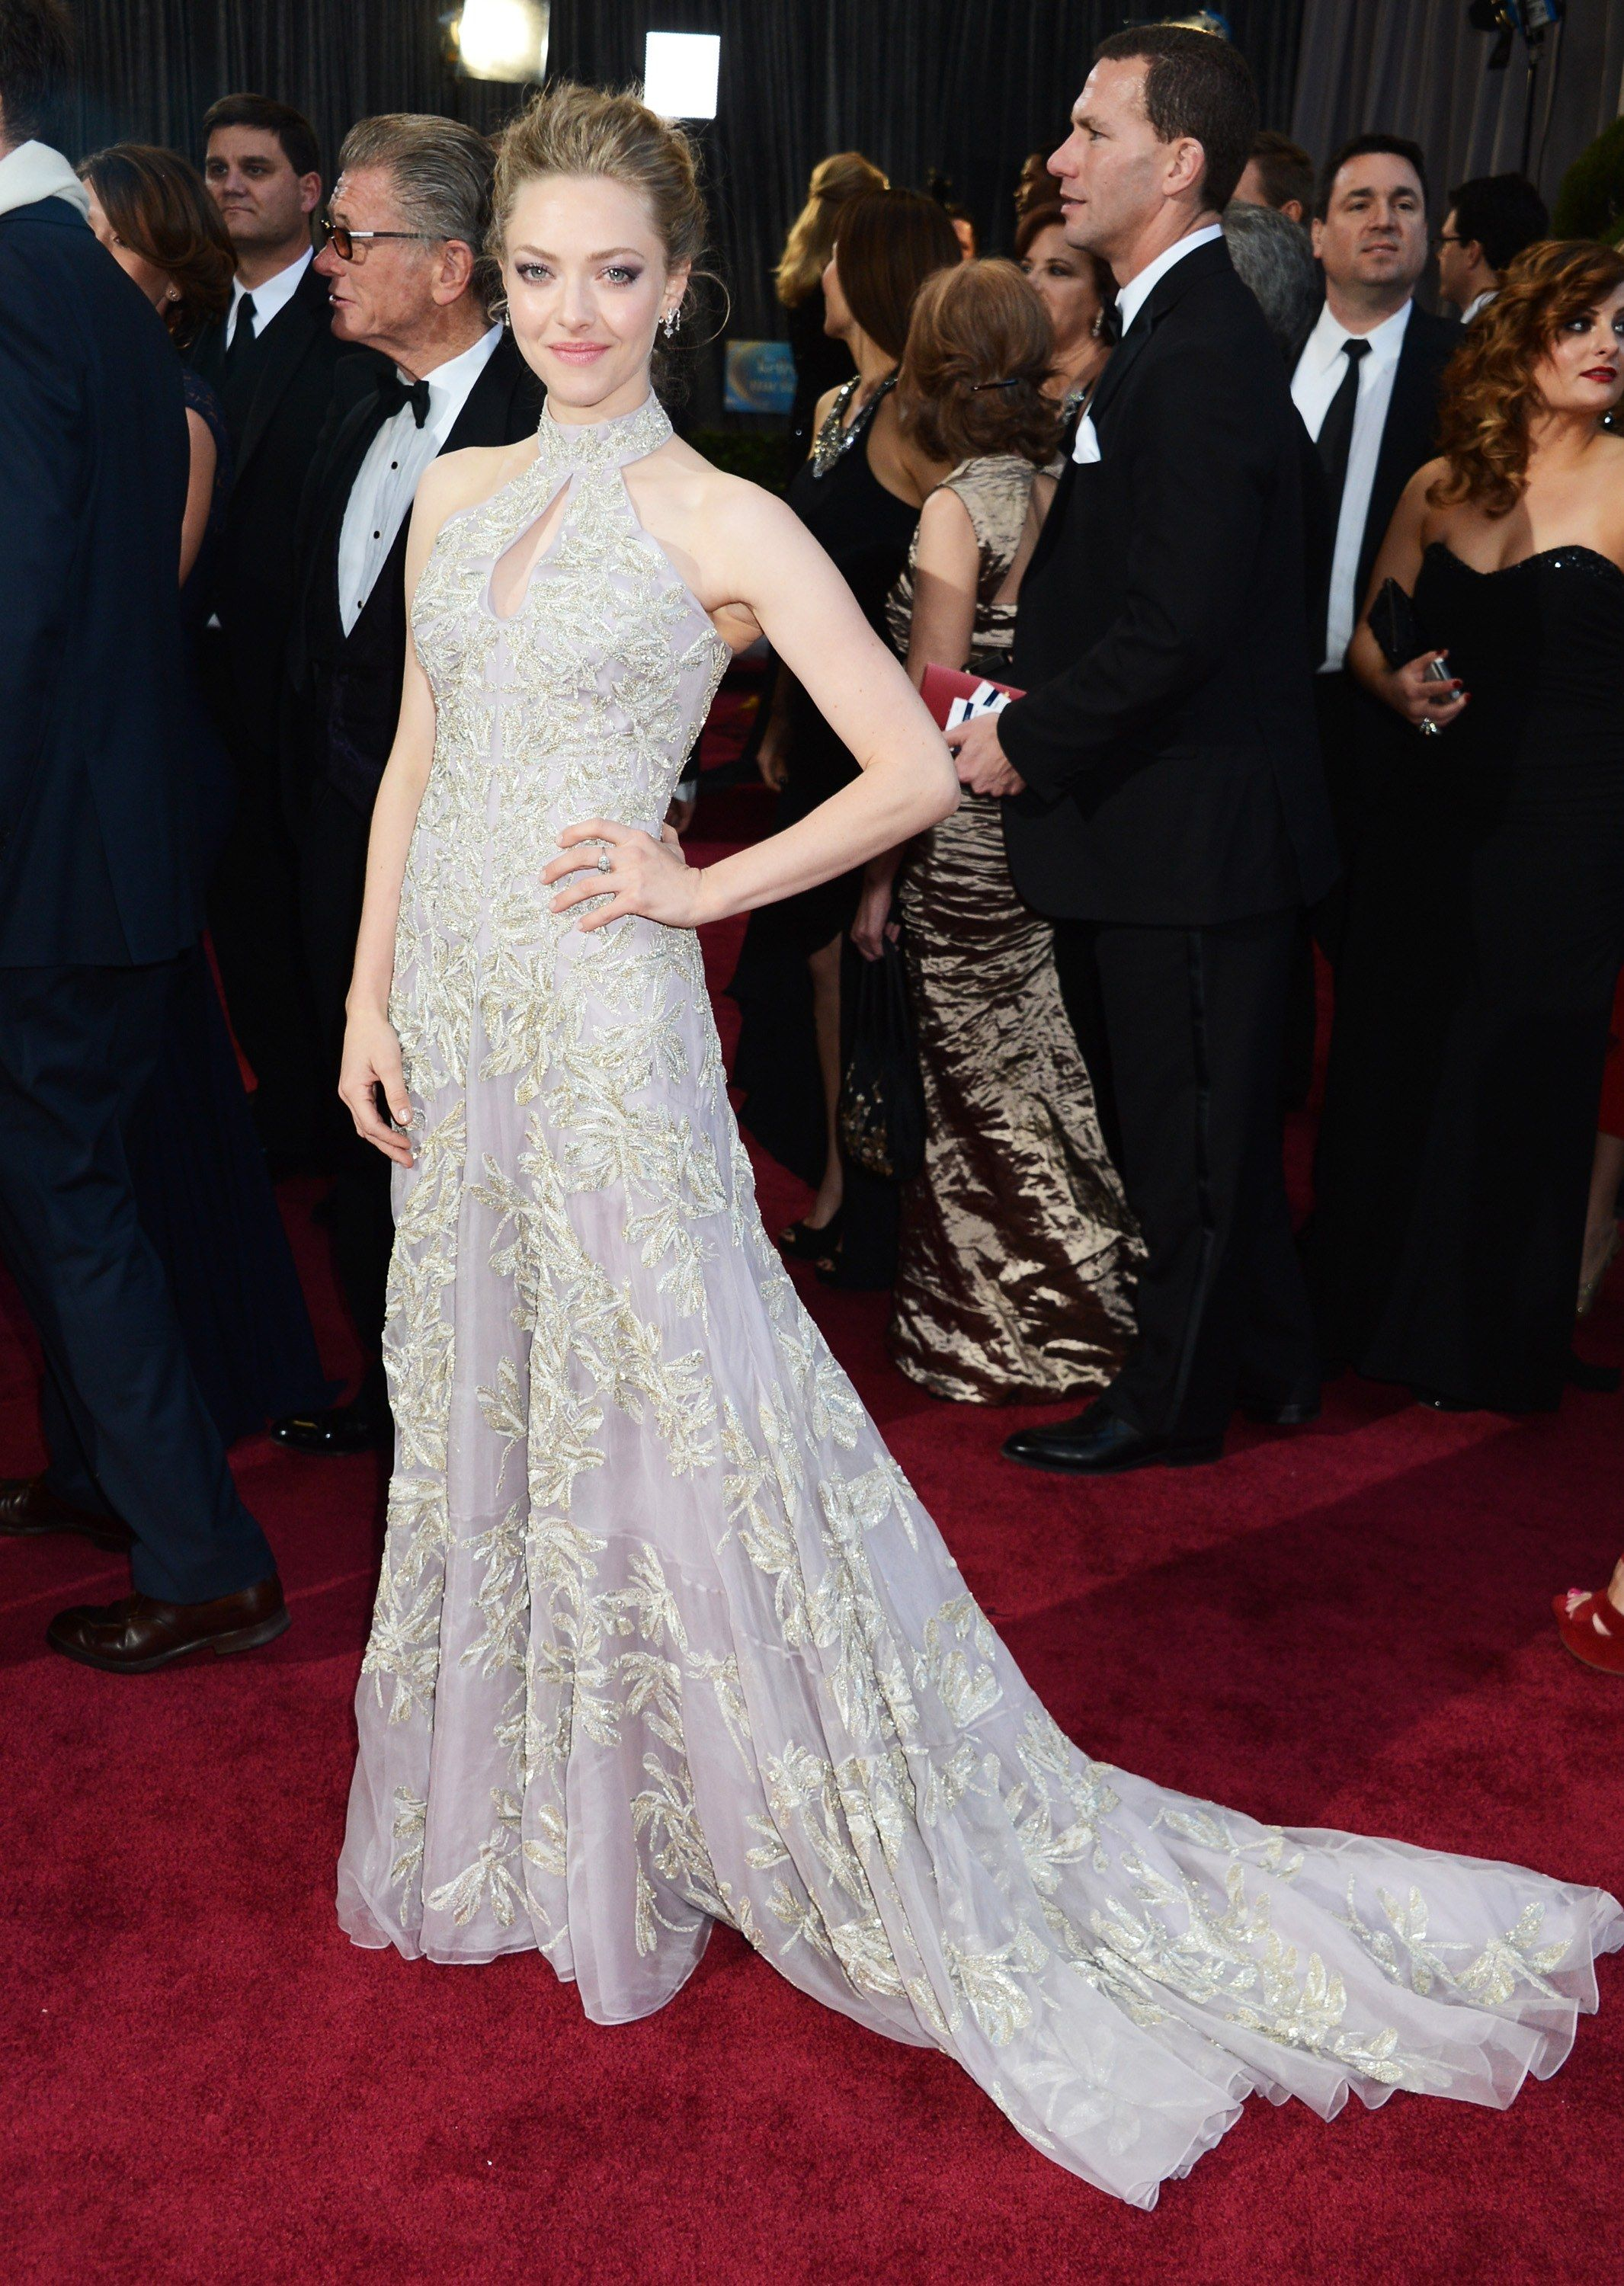 Best Oscar Dresses Of All Time Red Carpet At The Academy Awards Vogue